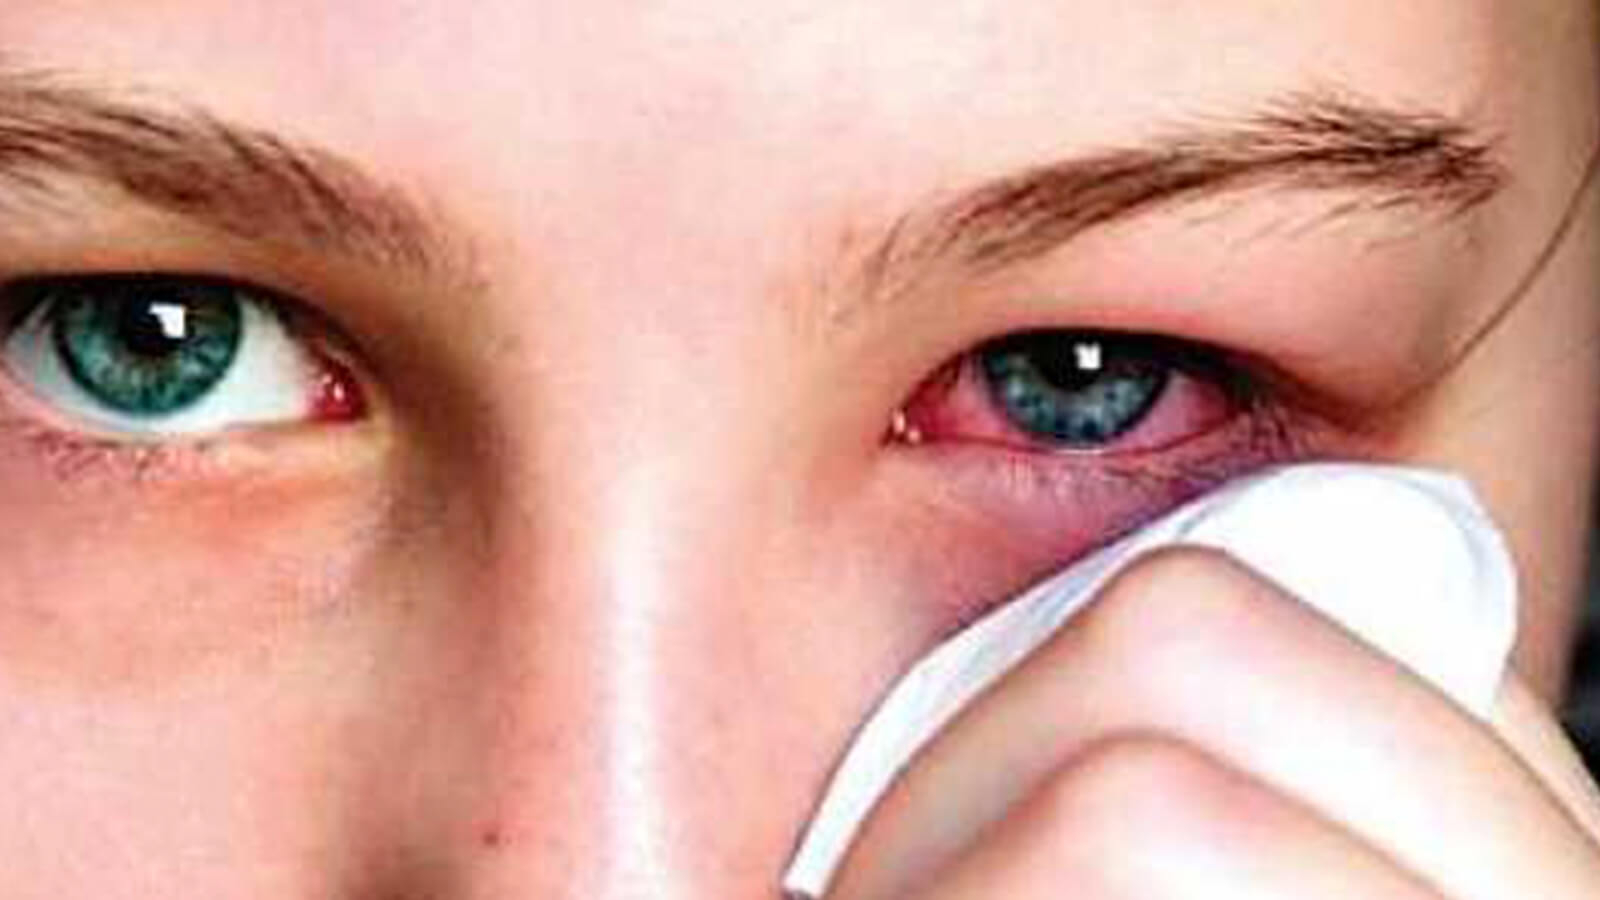 smoking causes eye infections